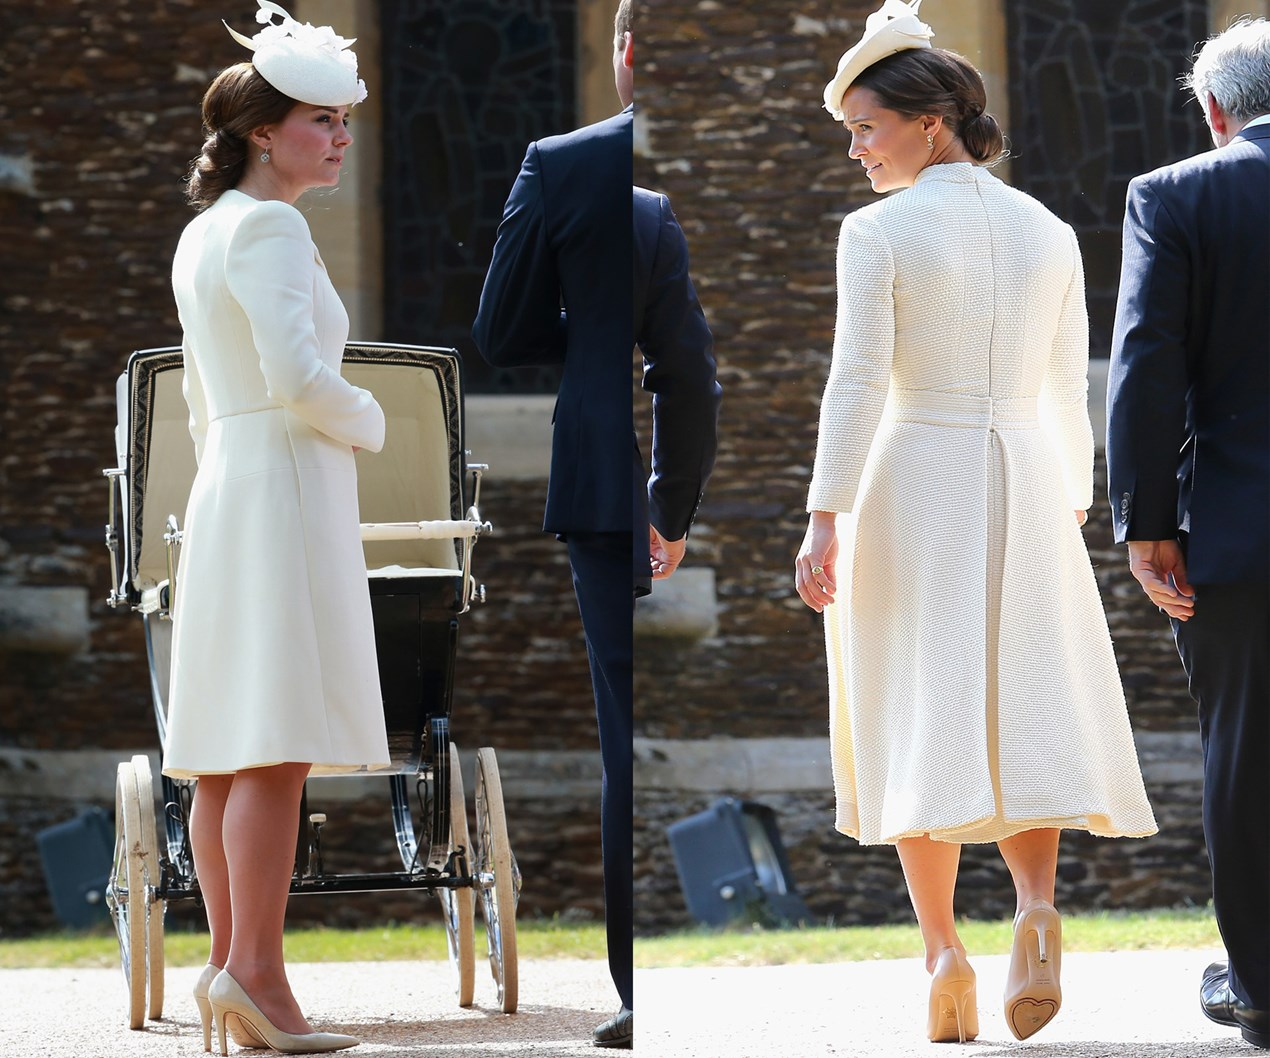 Etiquette expert slams Pippa Middleton for wearing similar outfit as Duchess to royal christening